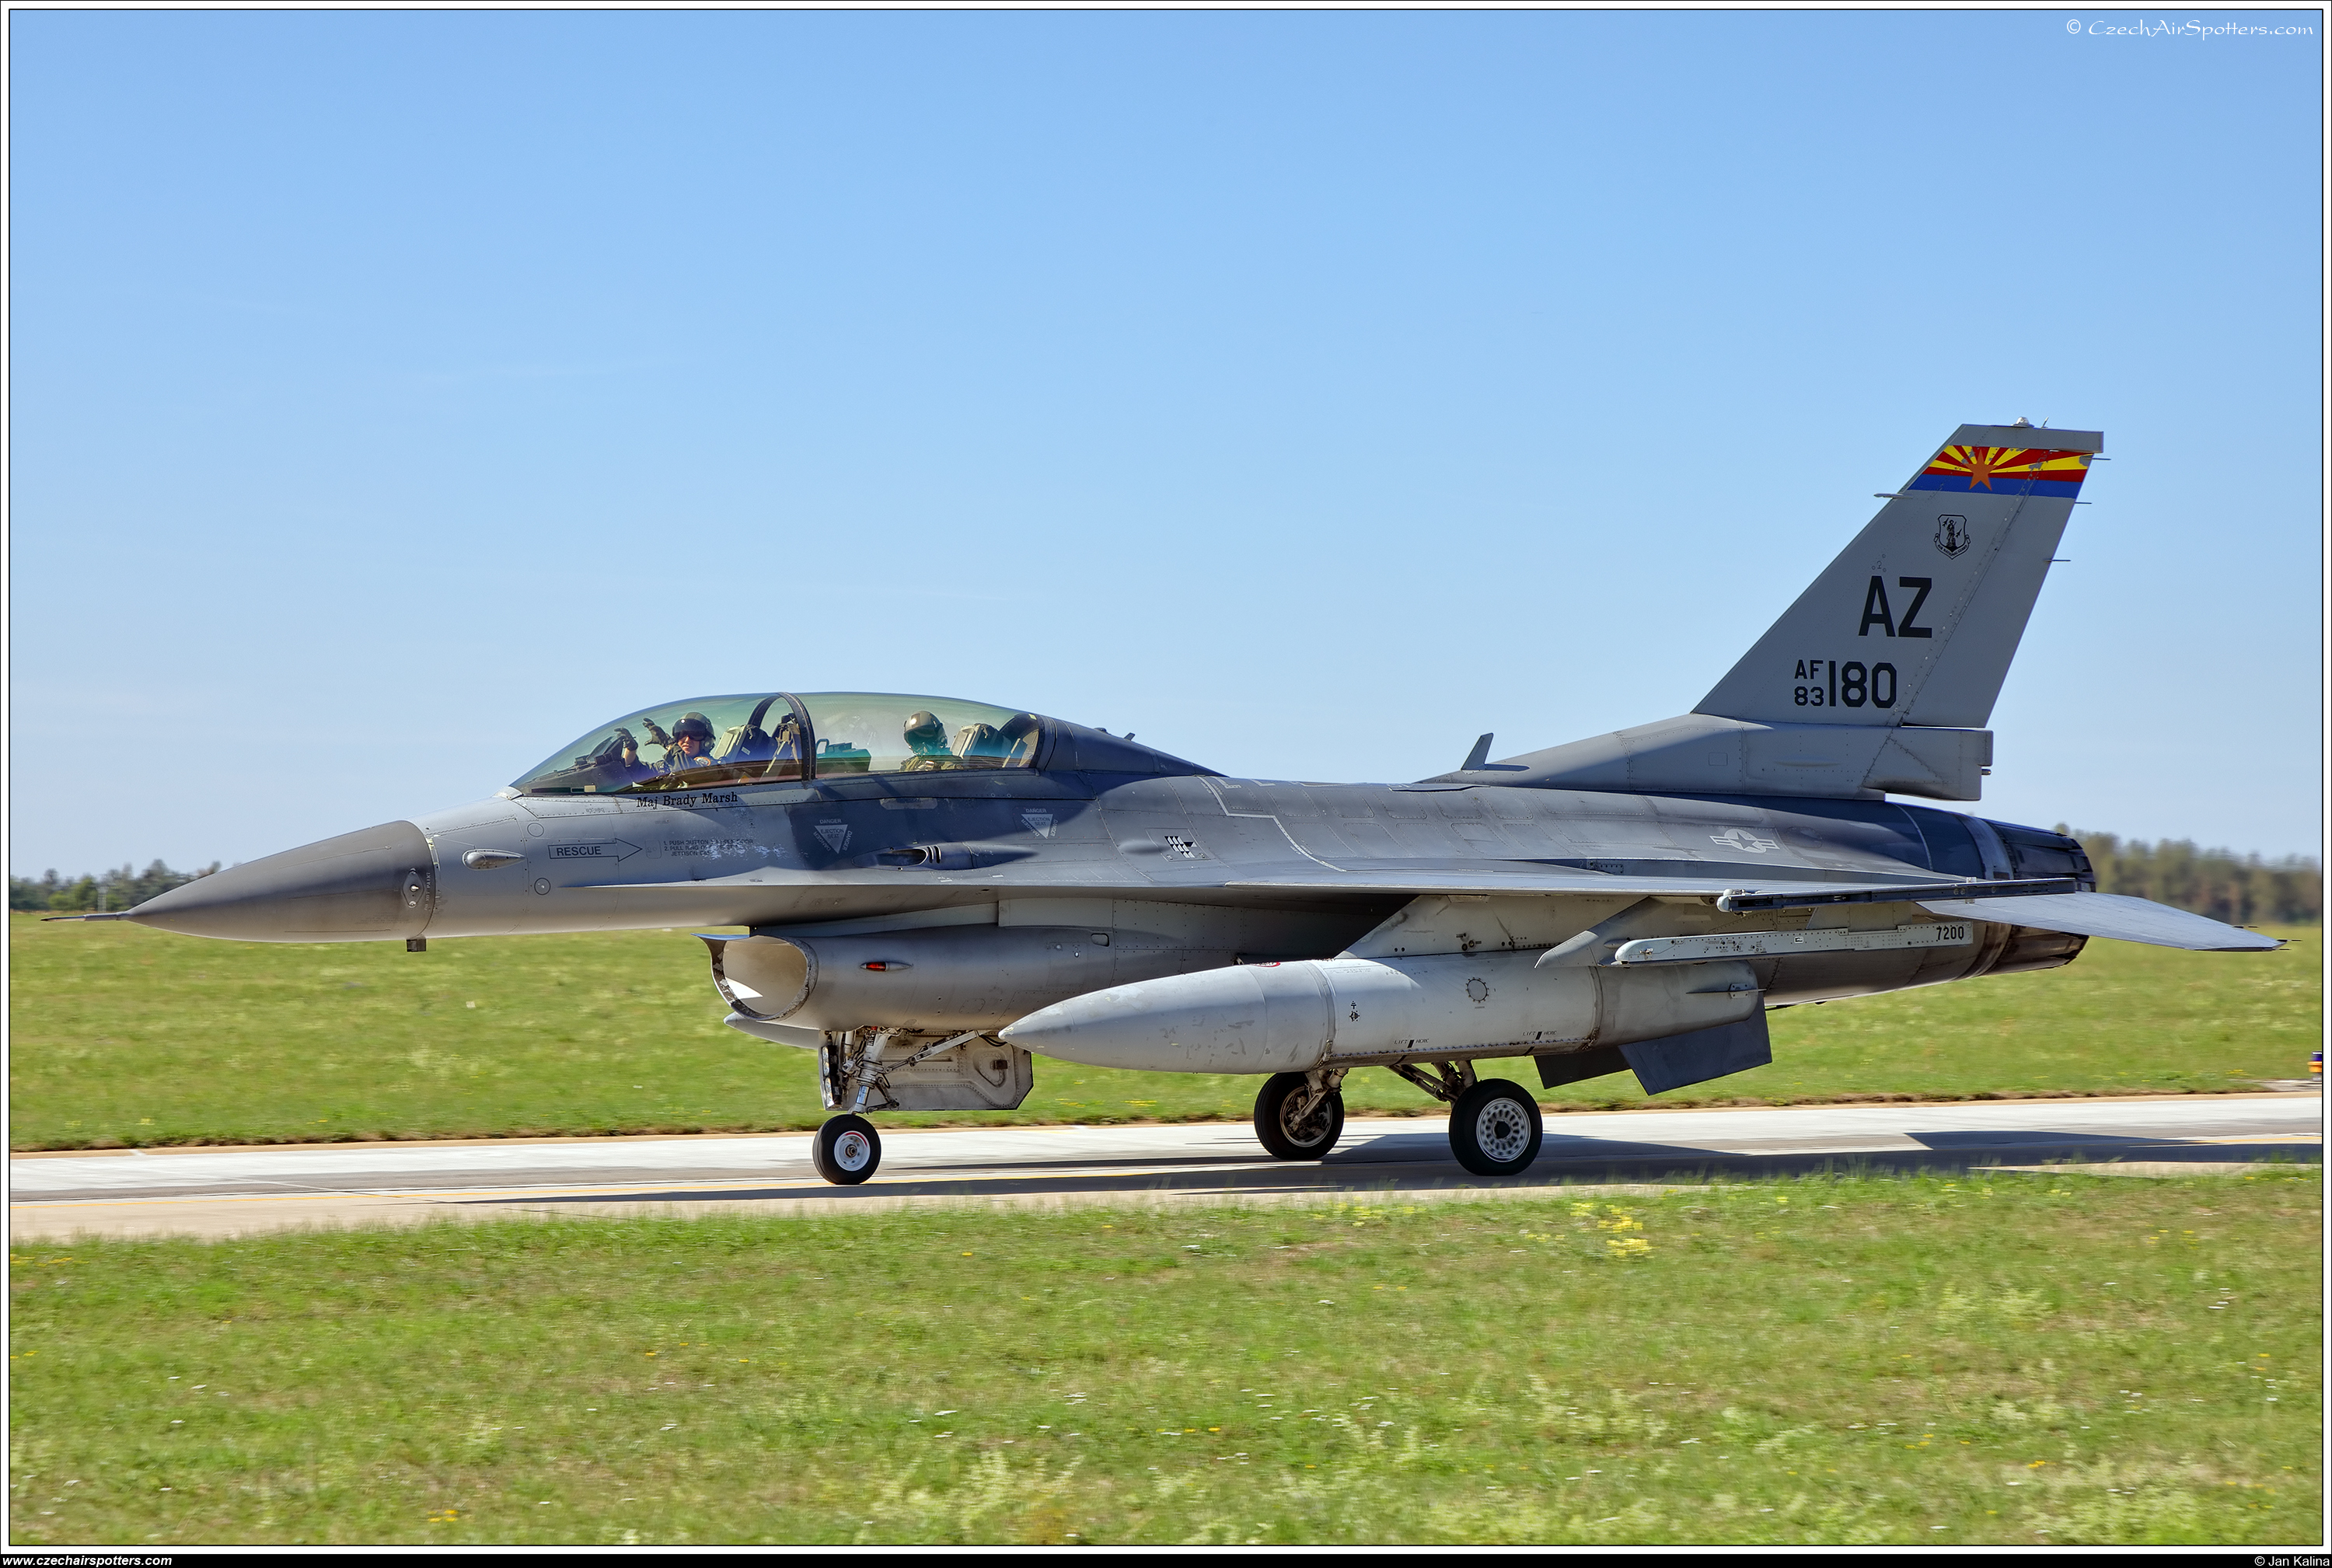 USA - Air Force – General Dynamics F-16D Fighting Falcon 83-1180